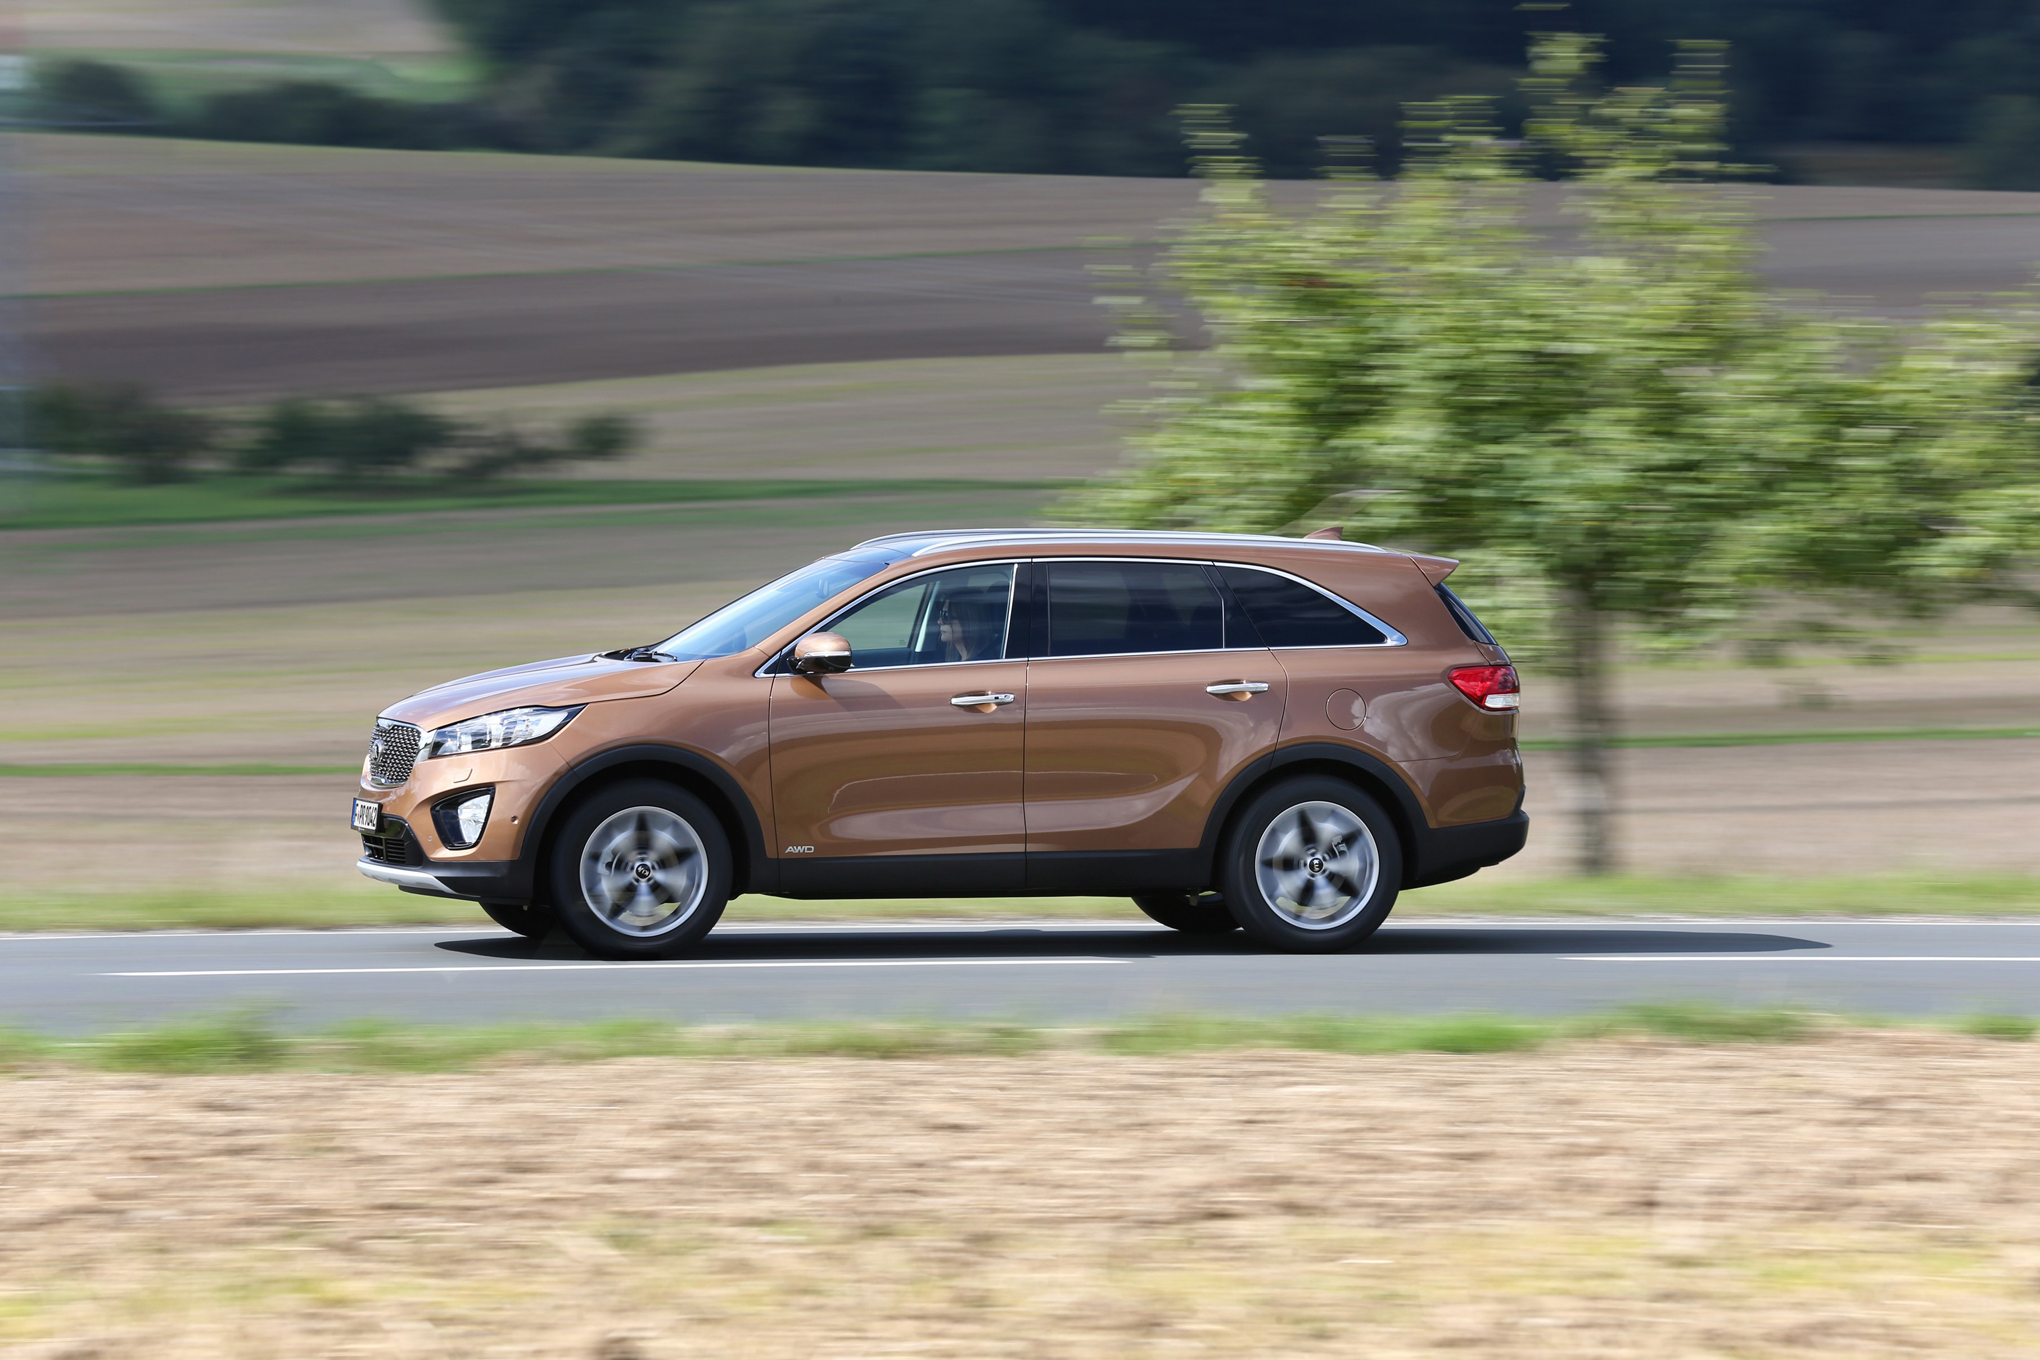 2016 Kia Sorento Performance Test